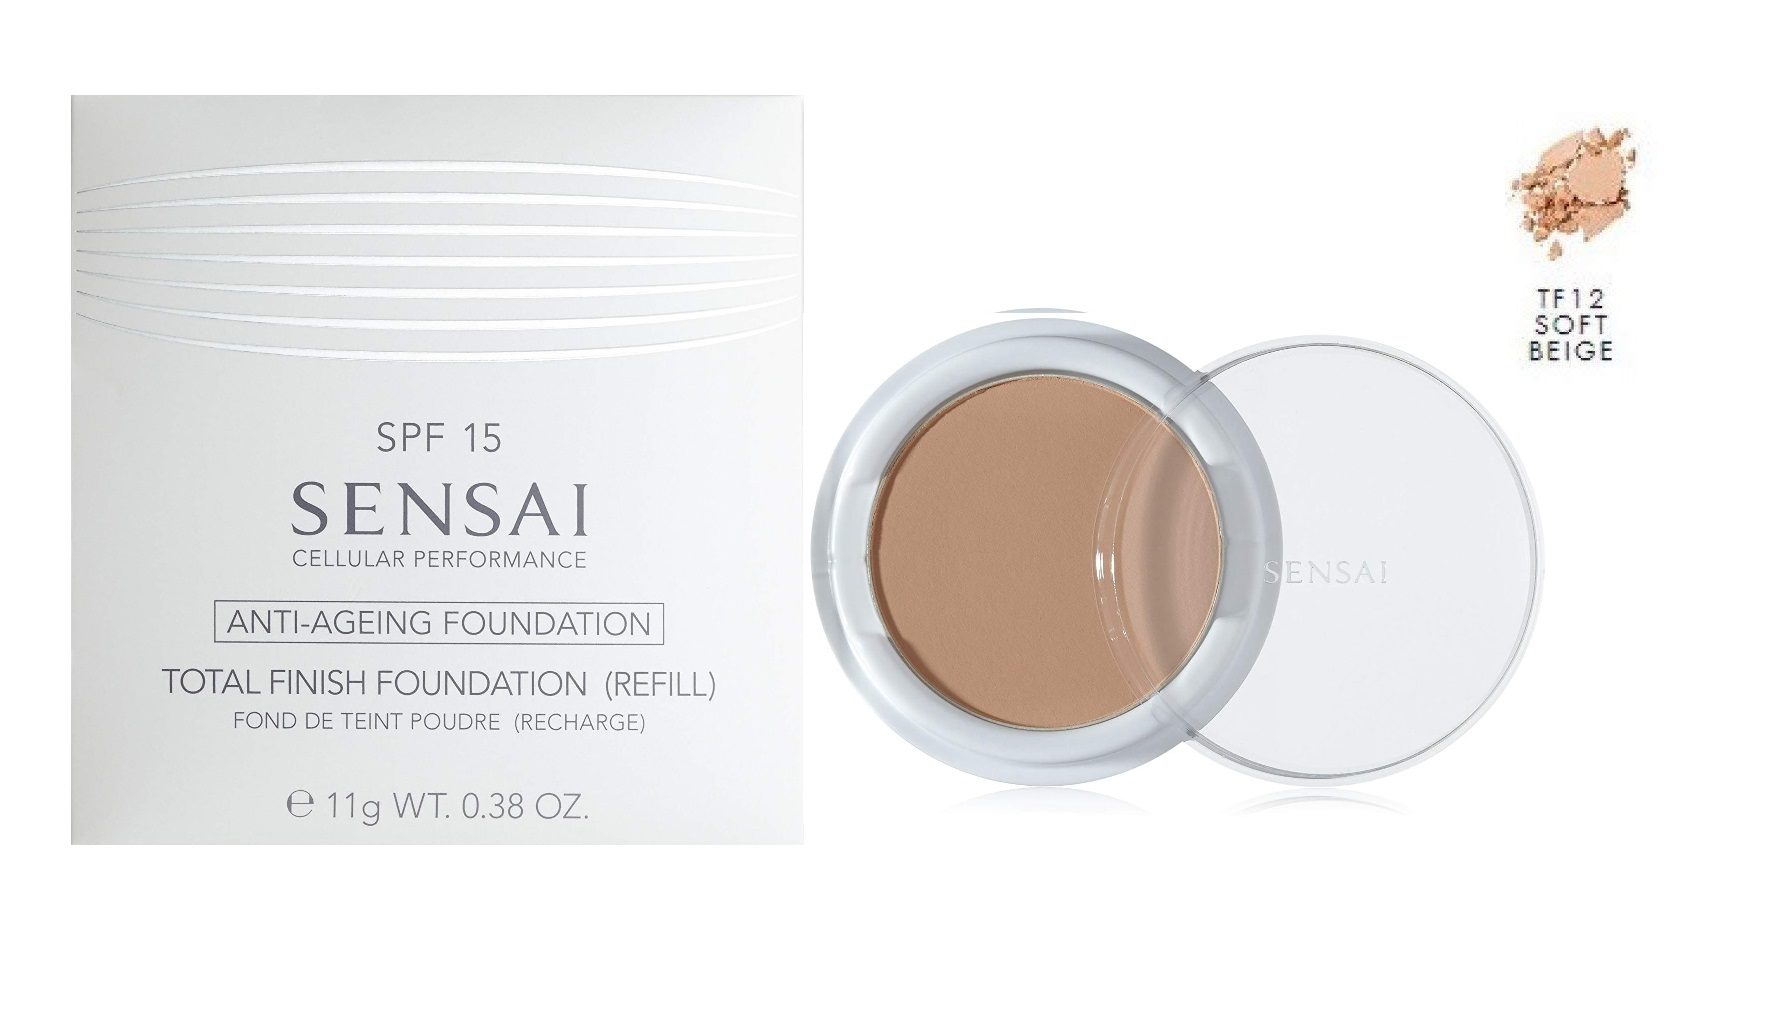 SENSAI TOTAL FINISH FOUNDATION COLOR TF12